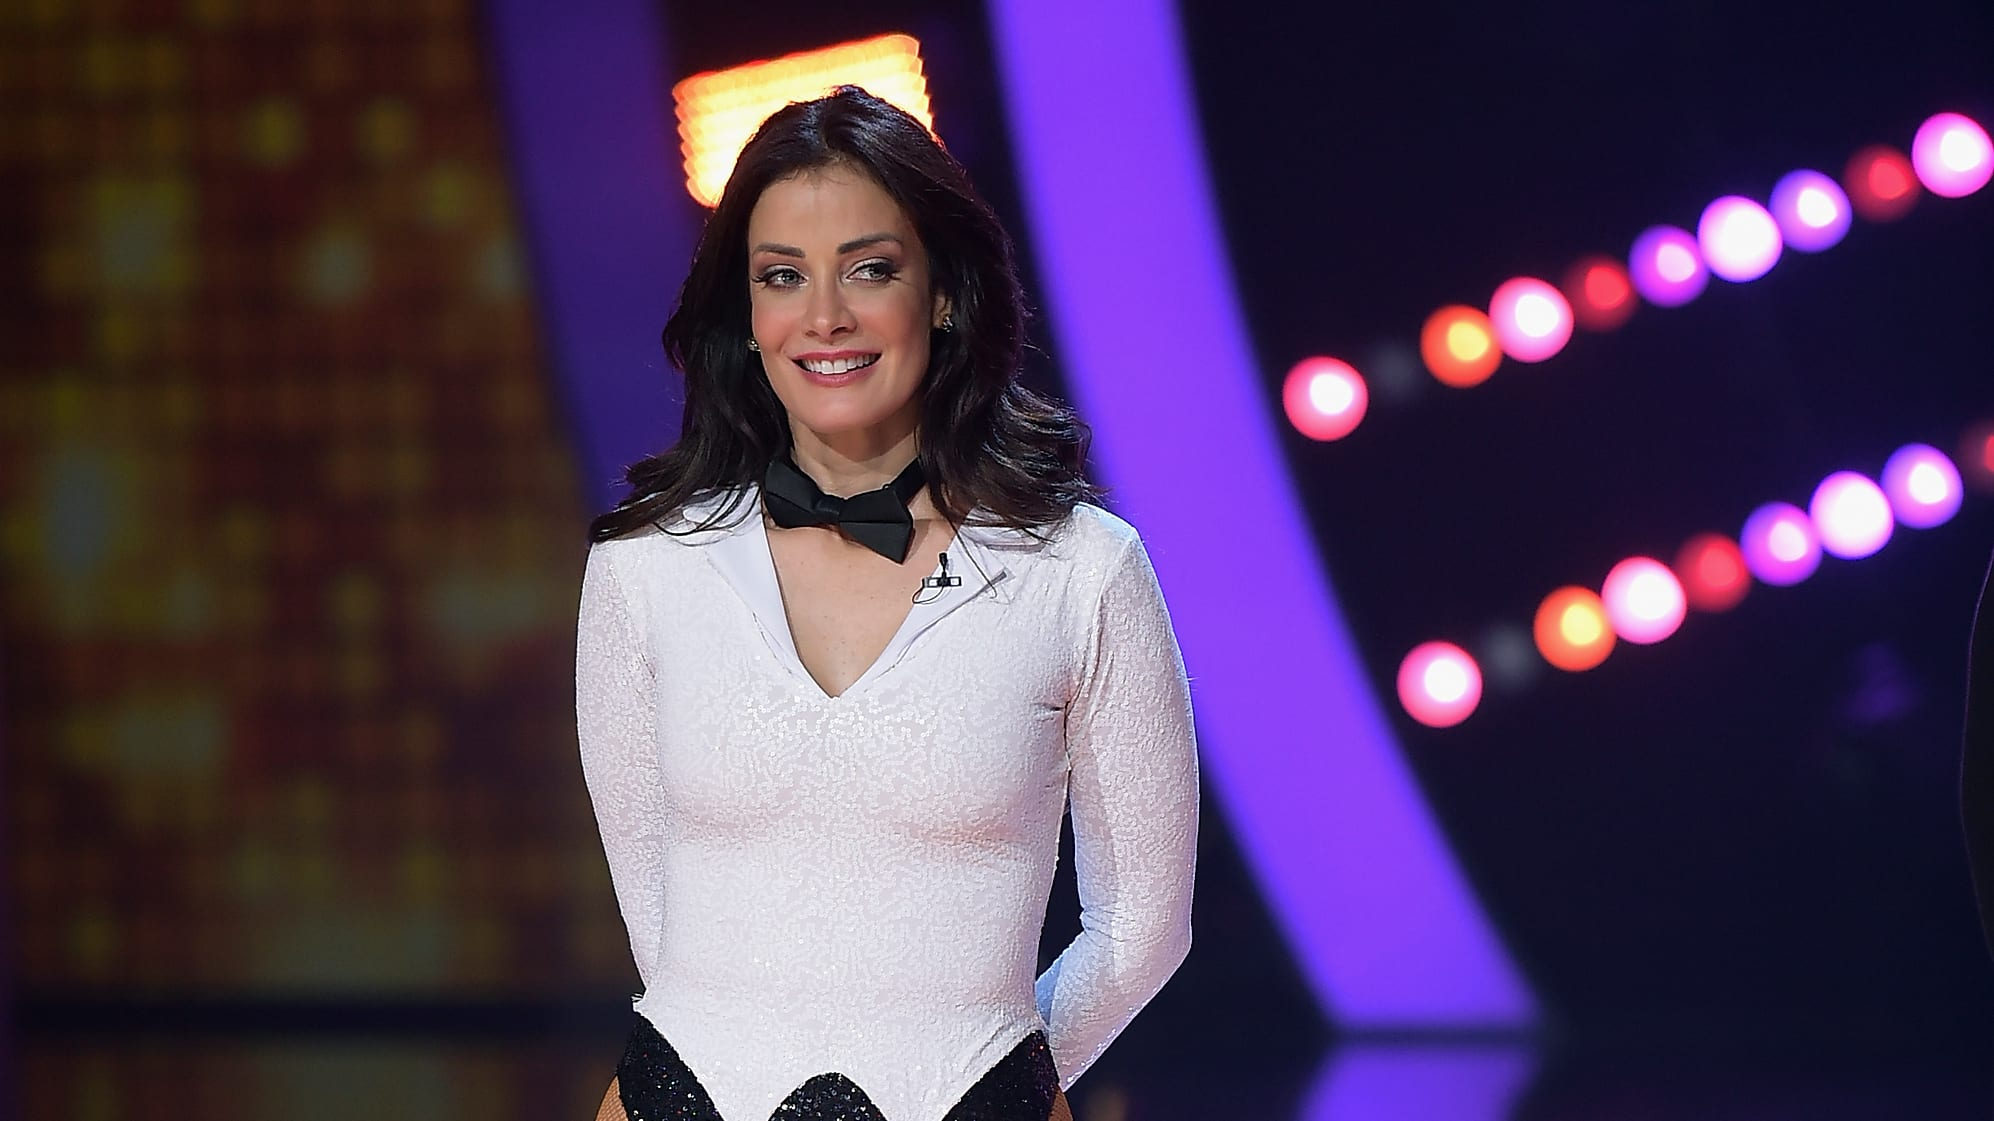 MIAMI, FL - SEPTEMBER 24:  Dayanara Torres attends and dances at the Mira Quien Baila at Univision Studios on September 24, 2017 in Miami, Florida.  (Photo by Gustavo Caballero/Getty Images)